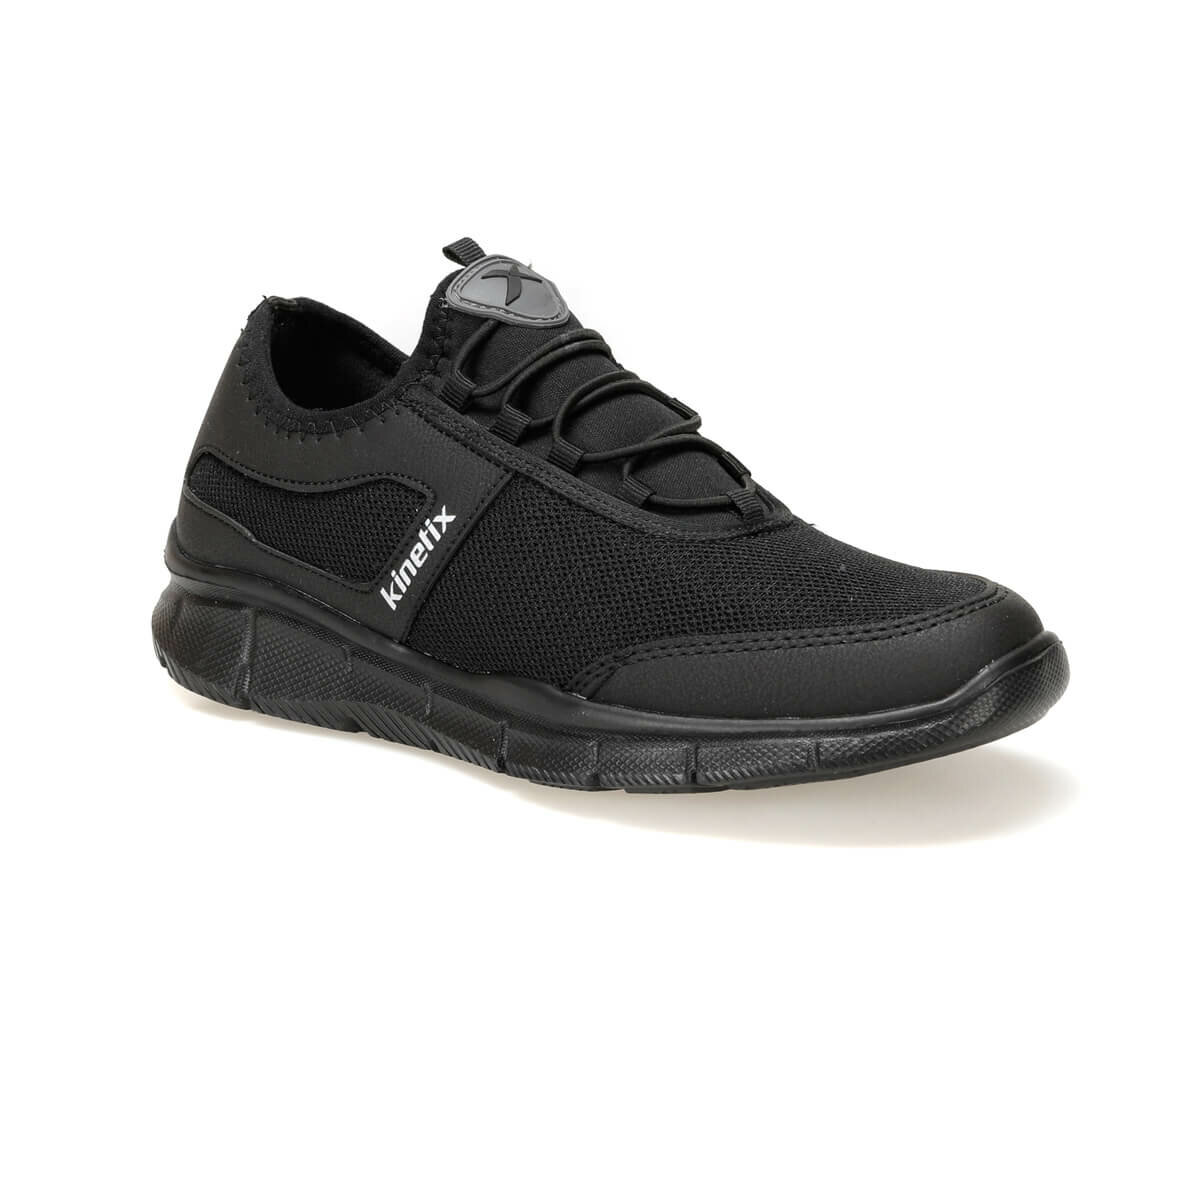 FLO AIRSHIP Black Male Walking Shoes KINETIX